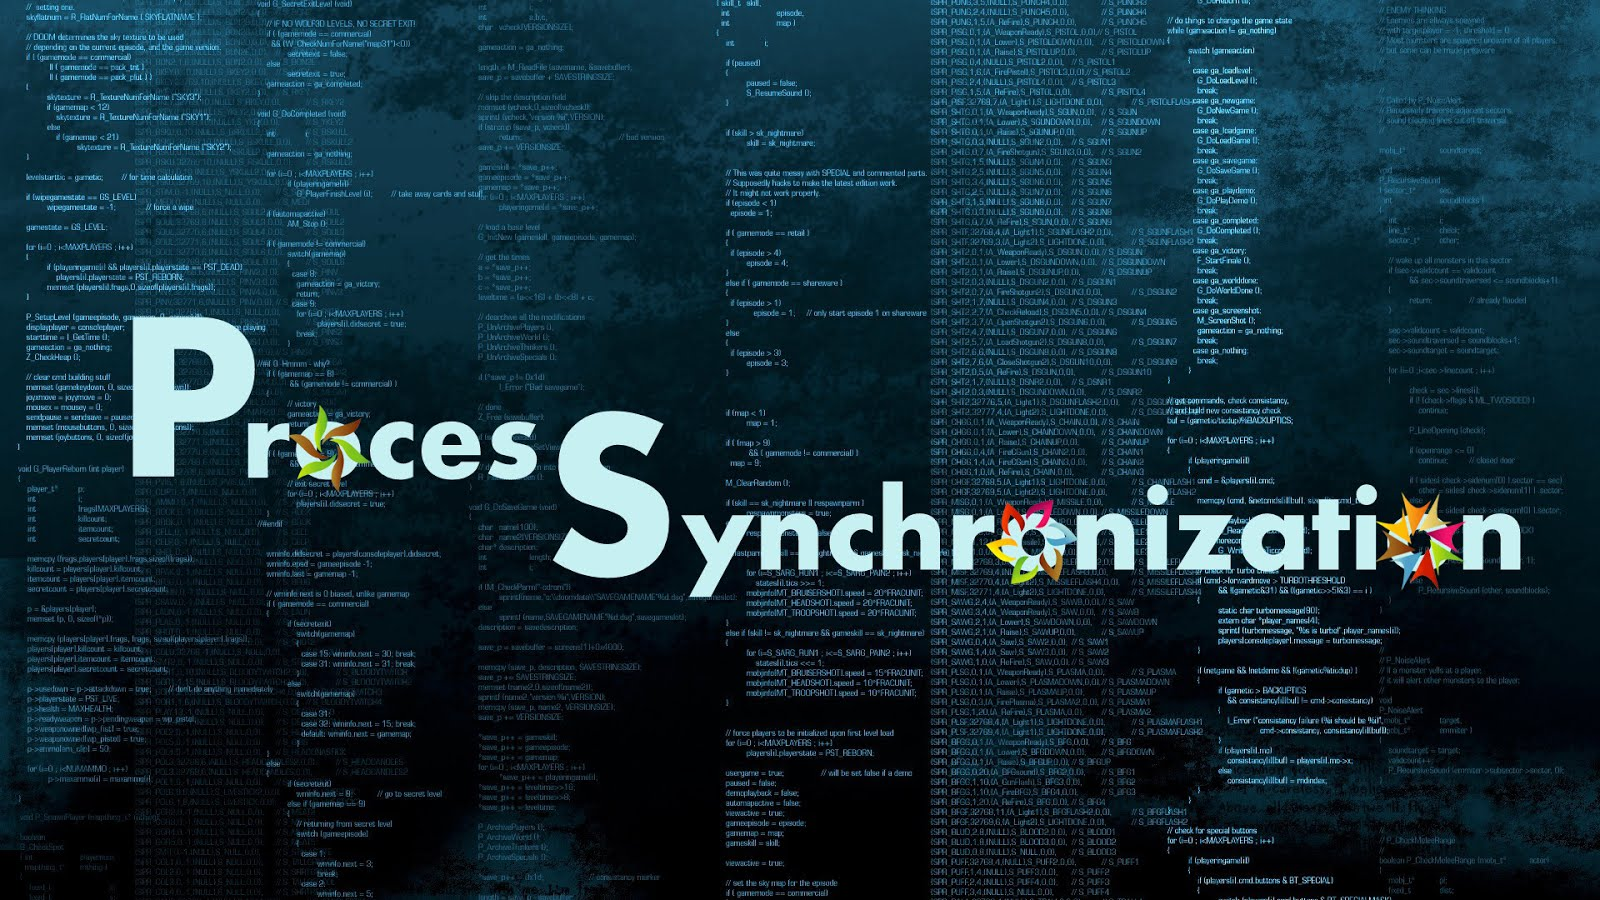 process synchronization Process synchronization references: abraham silberschatz, greg gagne, and peter baer galvin, operating system concepts, ninth edition , chapter 5.